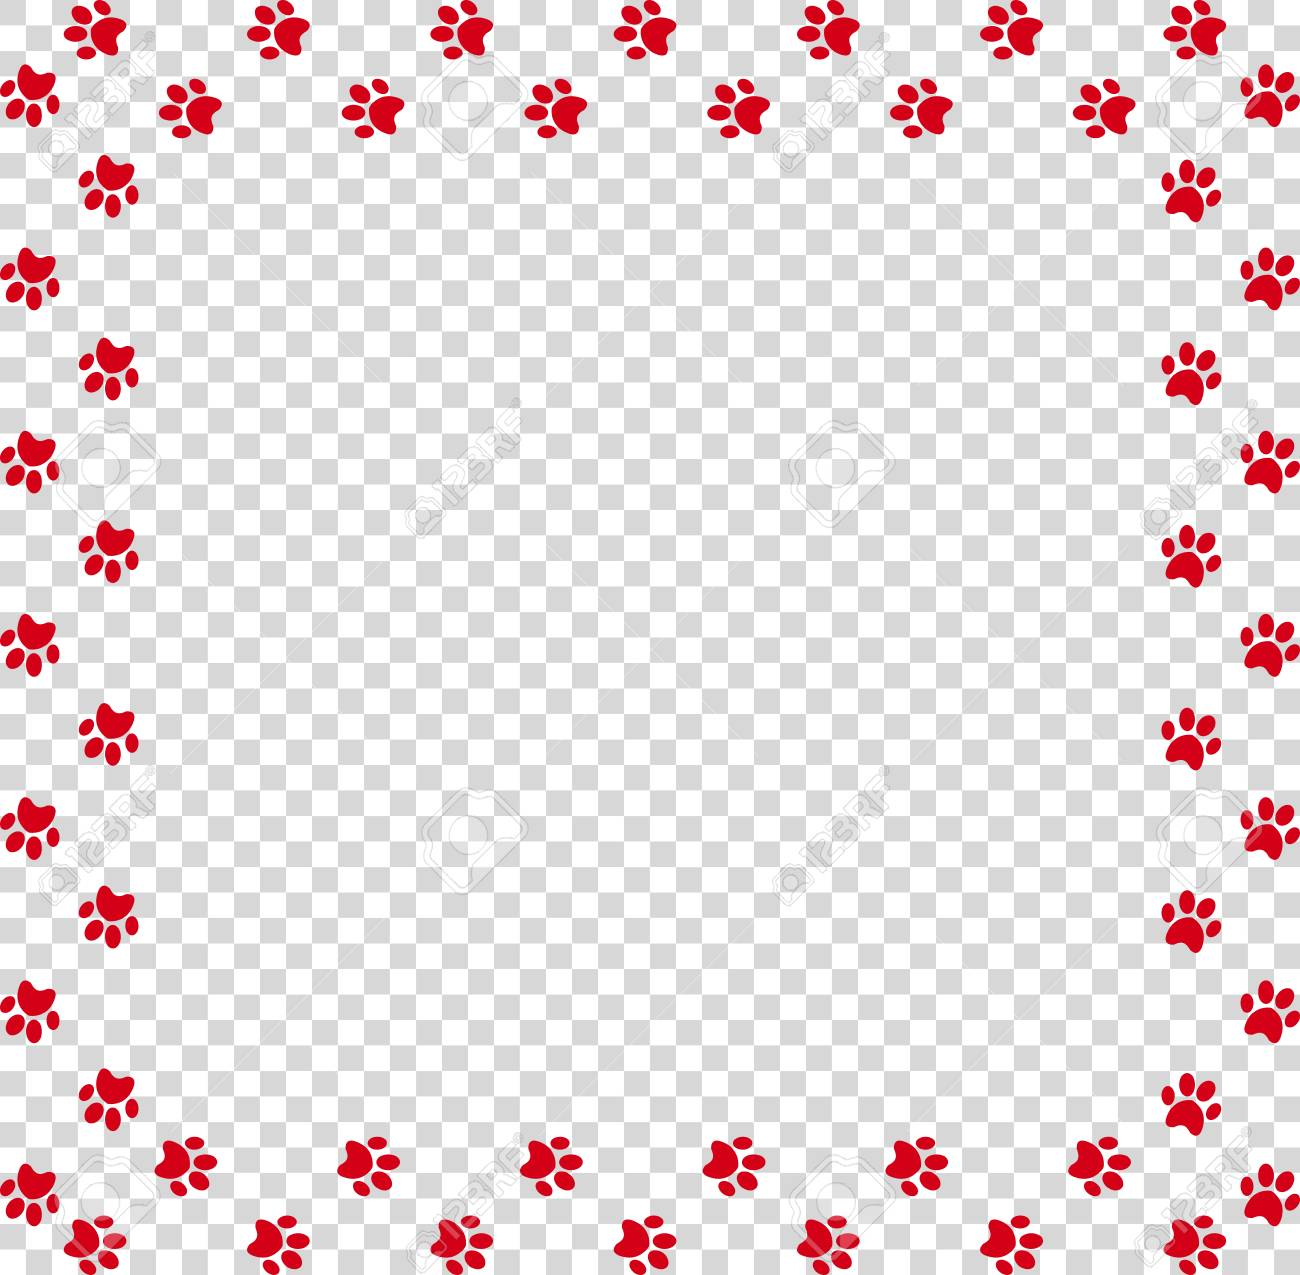 square frame made of red animal paw prints on transparent background